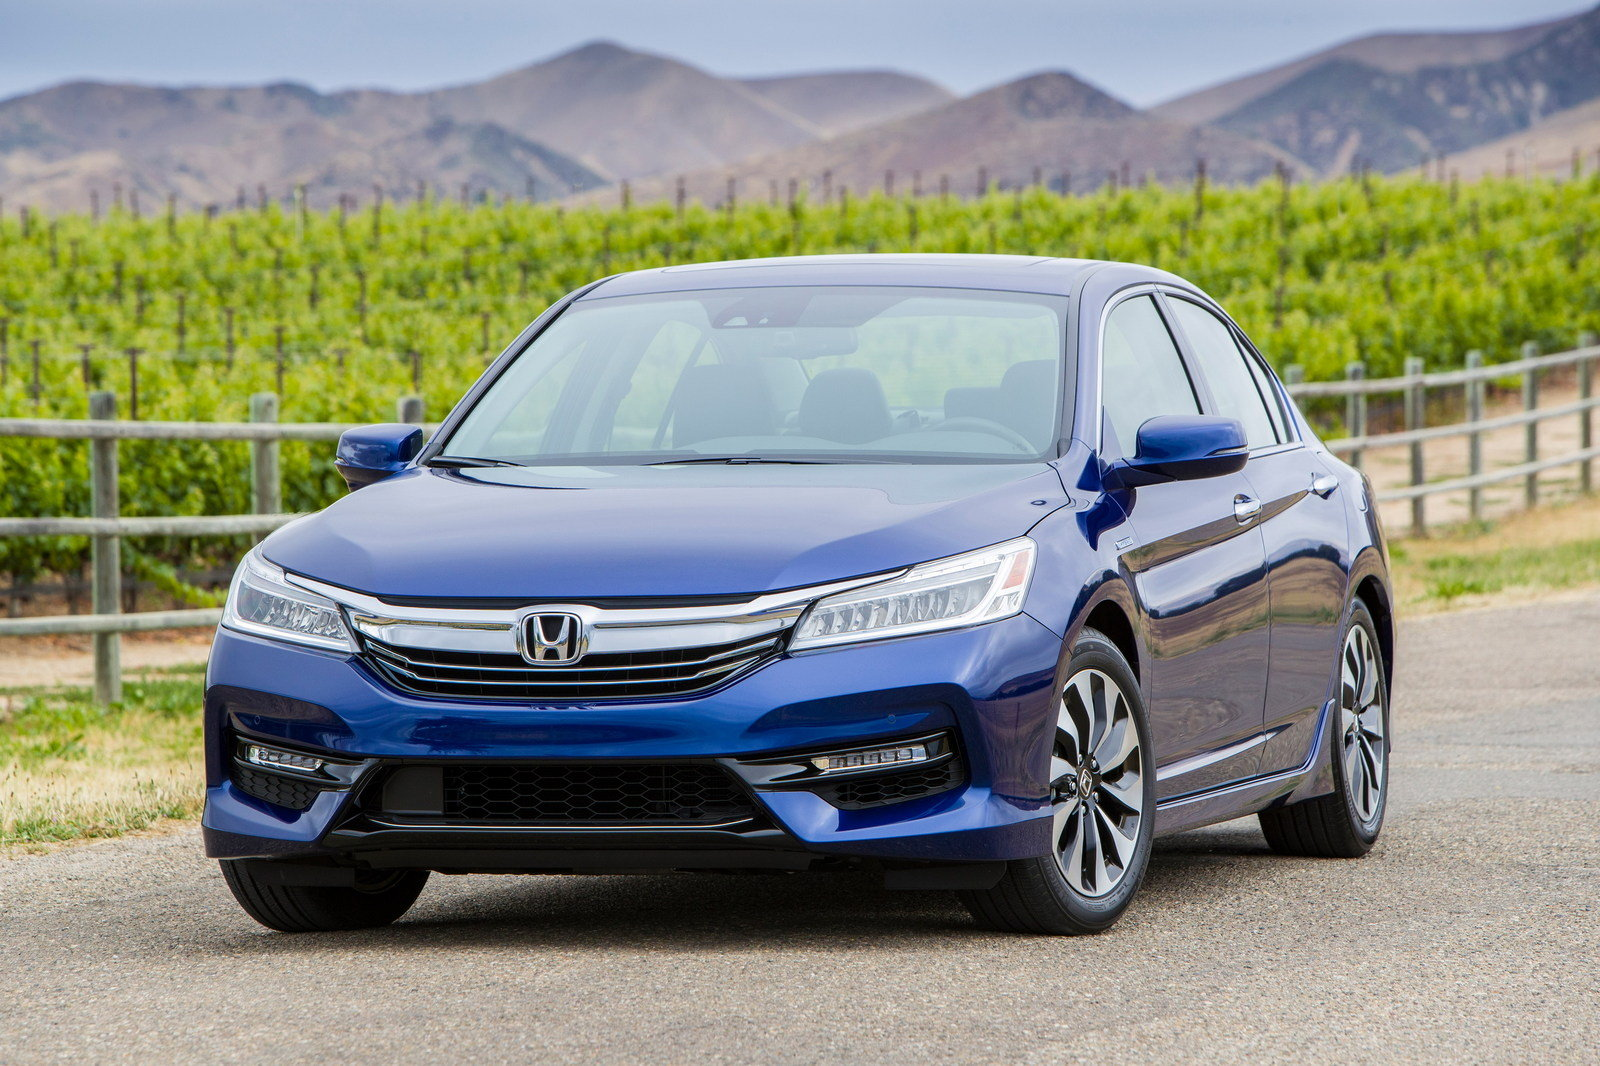 2017 Honda Accord Hybrid - Picture 679644 | car review @ Top Speed